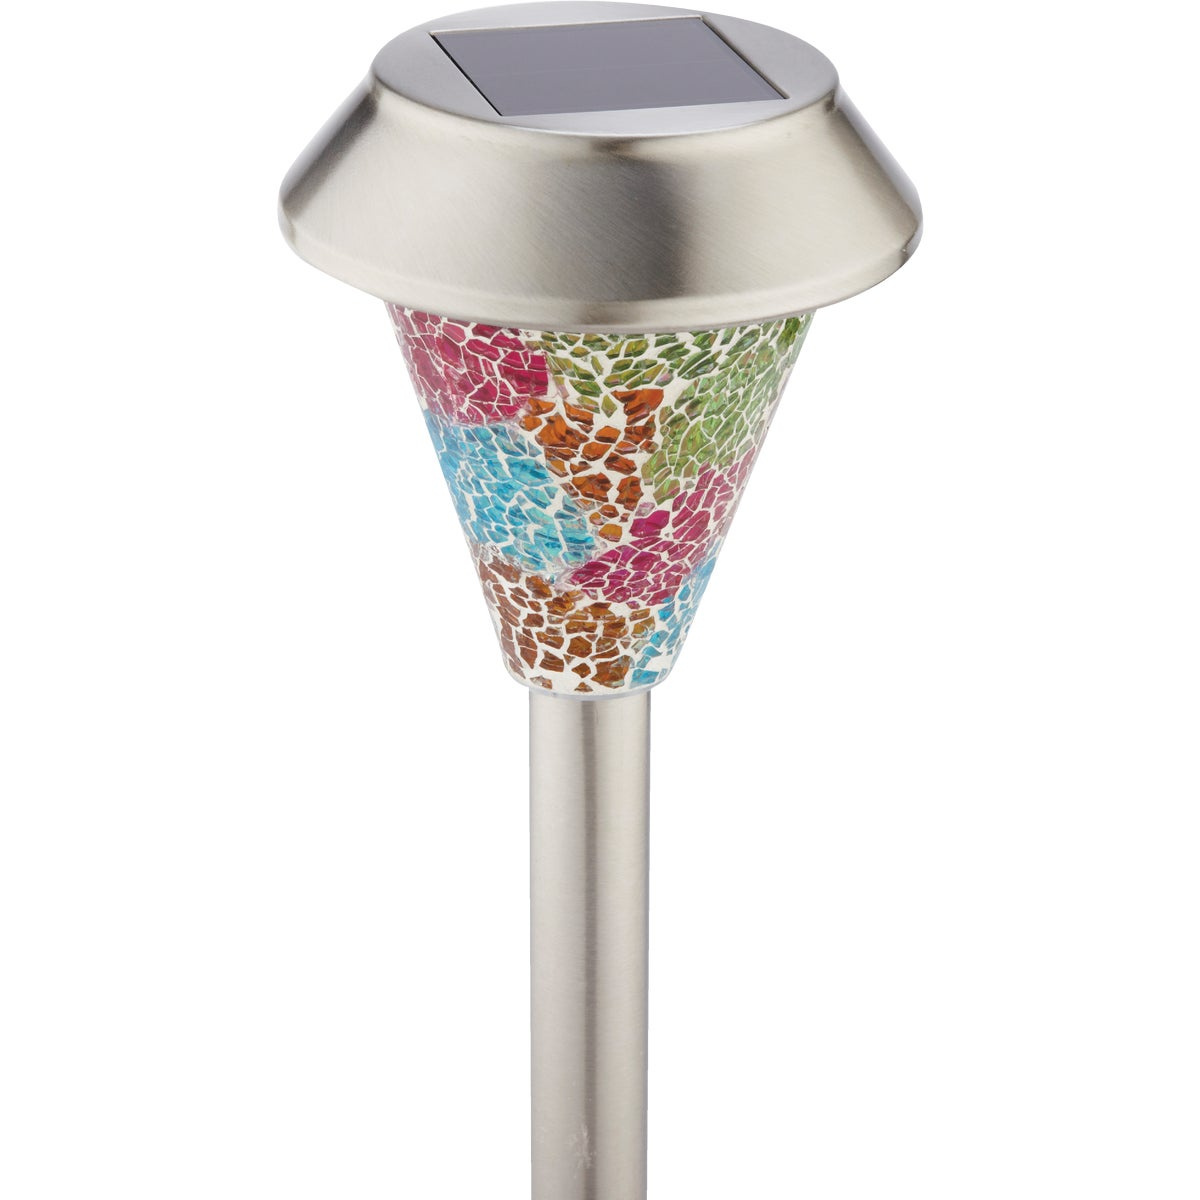 LARGE MOSAIC SOLAR LIGHT - A-02 by Do it Best